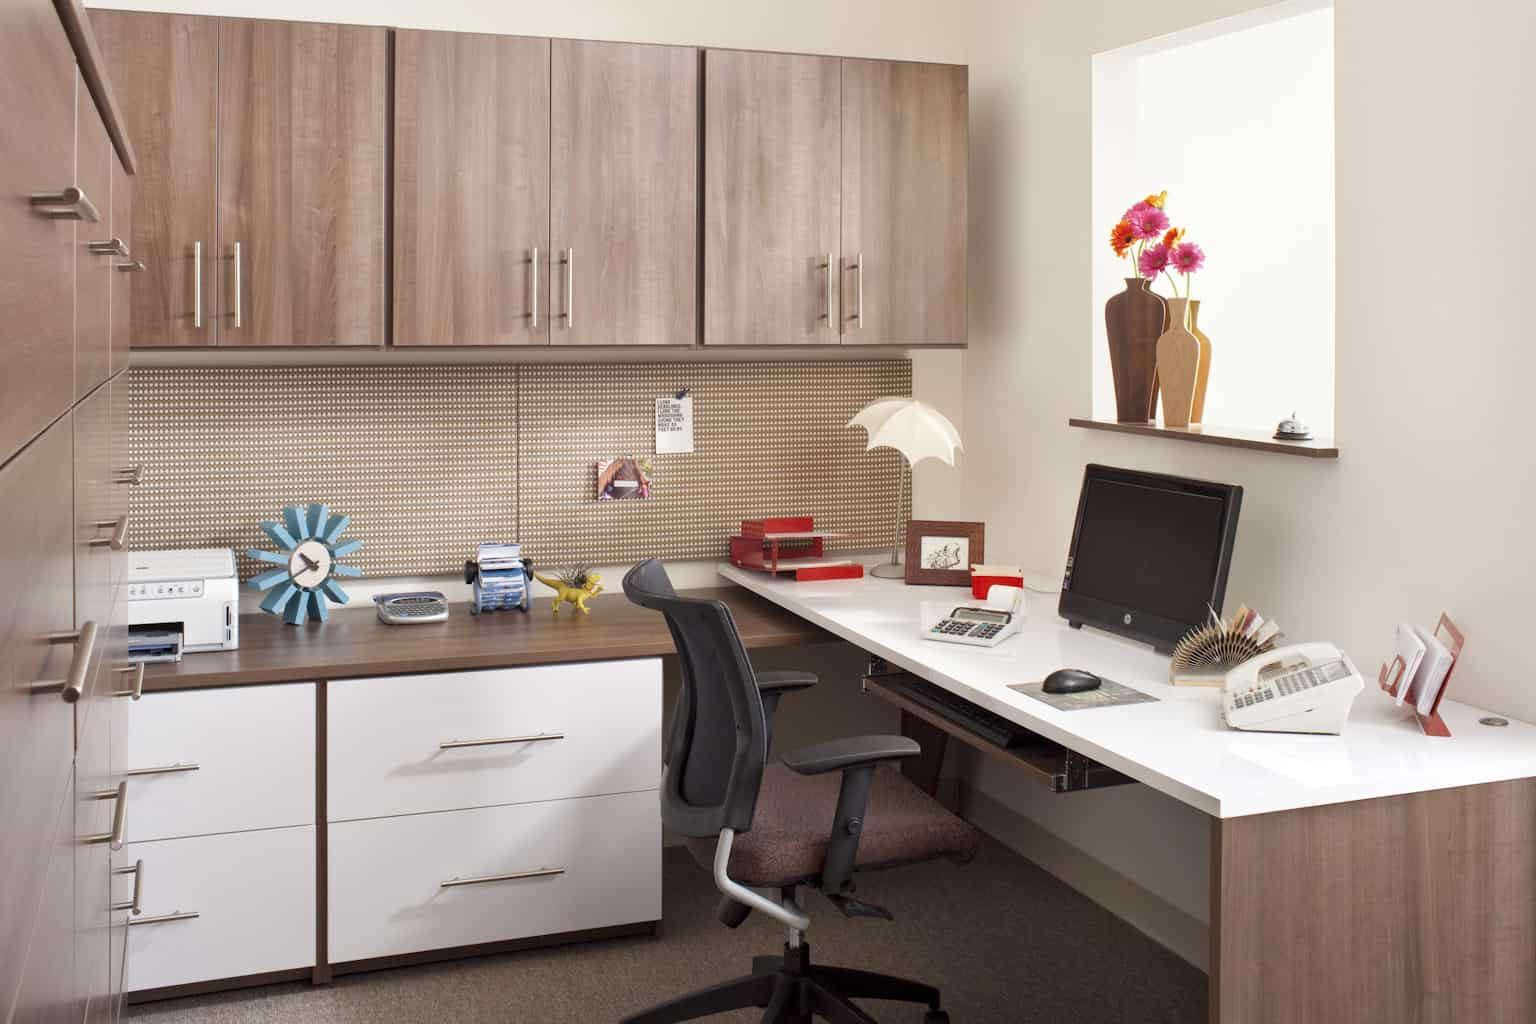 A chic home office with carpet flooring and classy cabinetry and counters. The office desk looks charming as well.